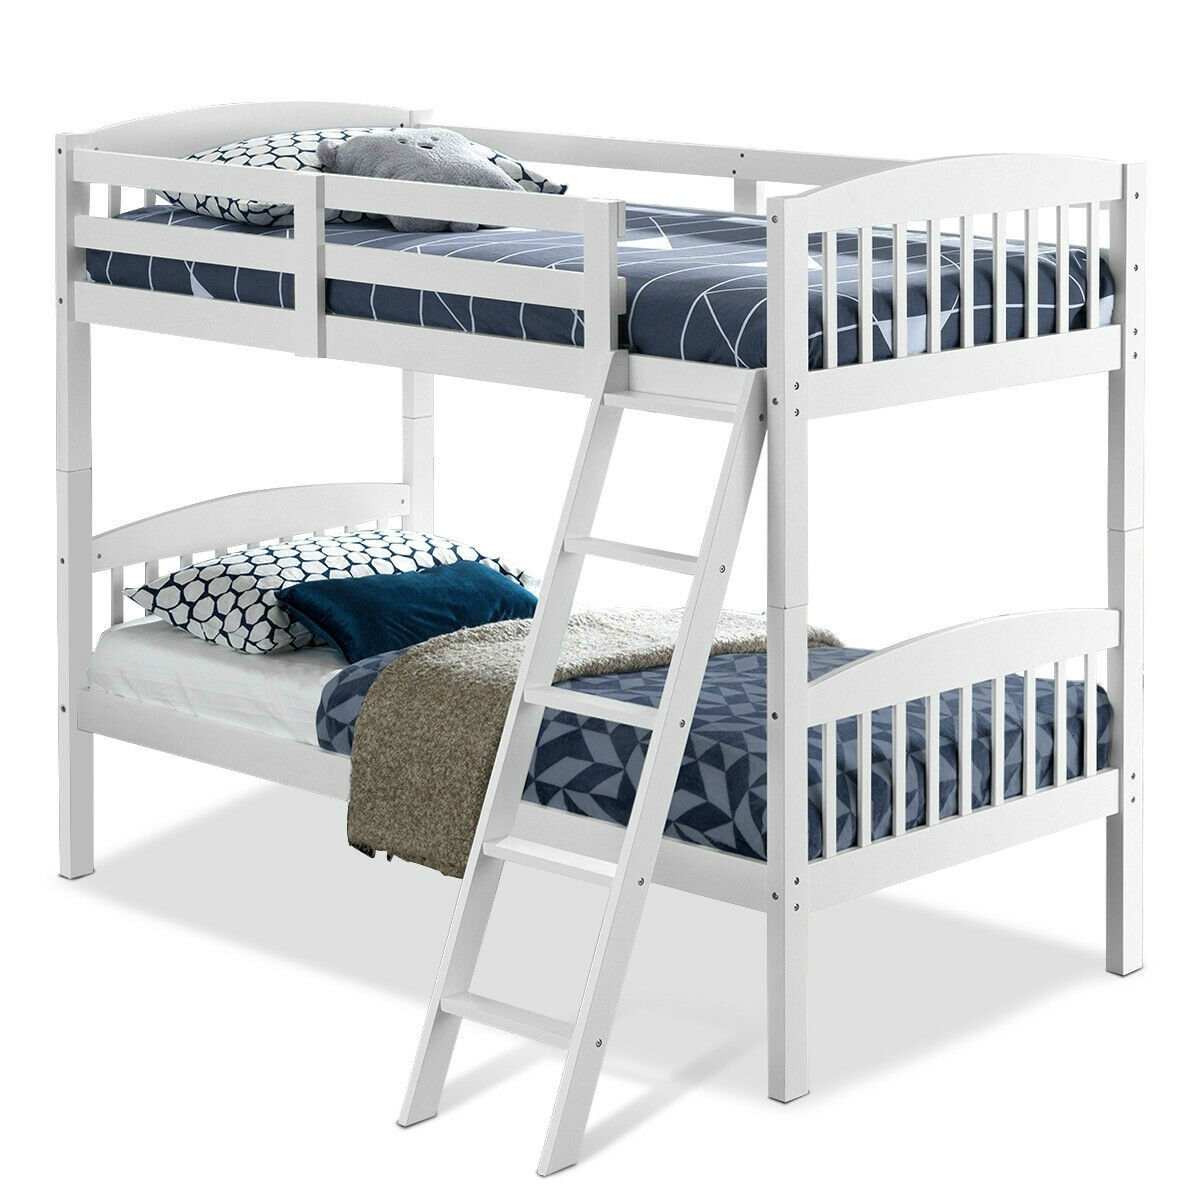 White Wood Bunk Beds Twin Over Twin Online Discount Shop For Electronics Apparel Toys Books Games Computers Shoes Jewelry Watches Baby Products Sports Outdoors Office Products Bed Bath Furniture